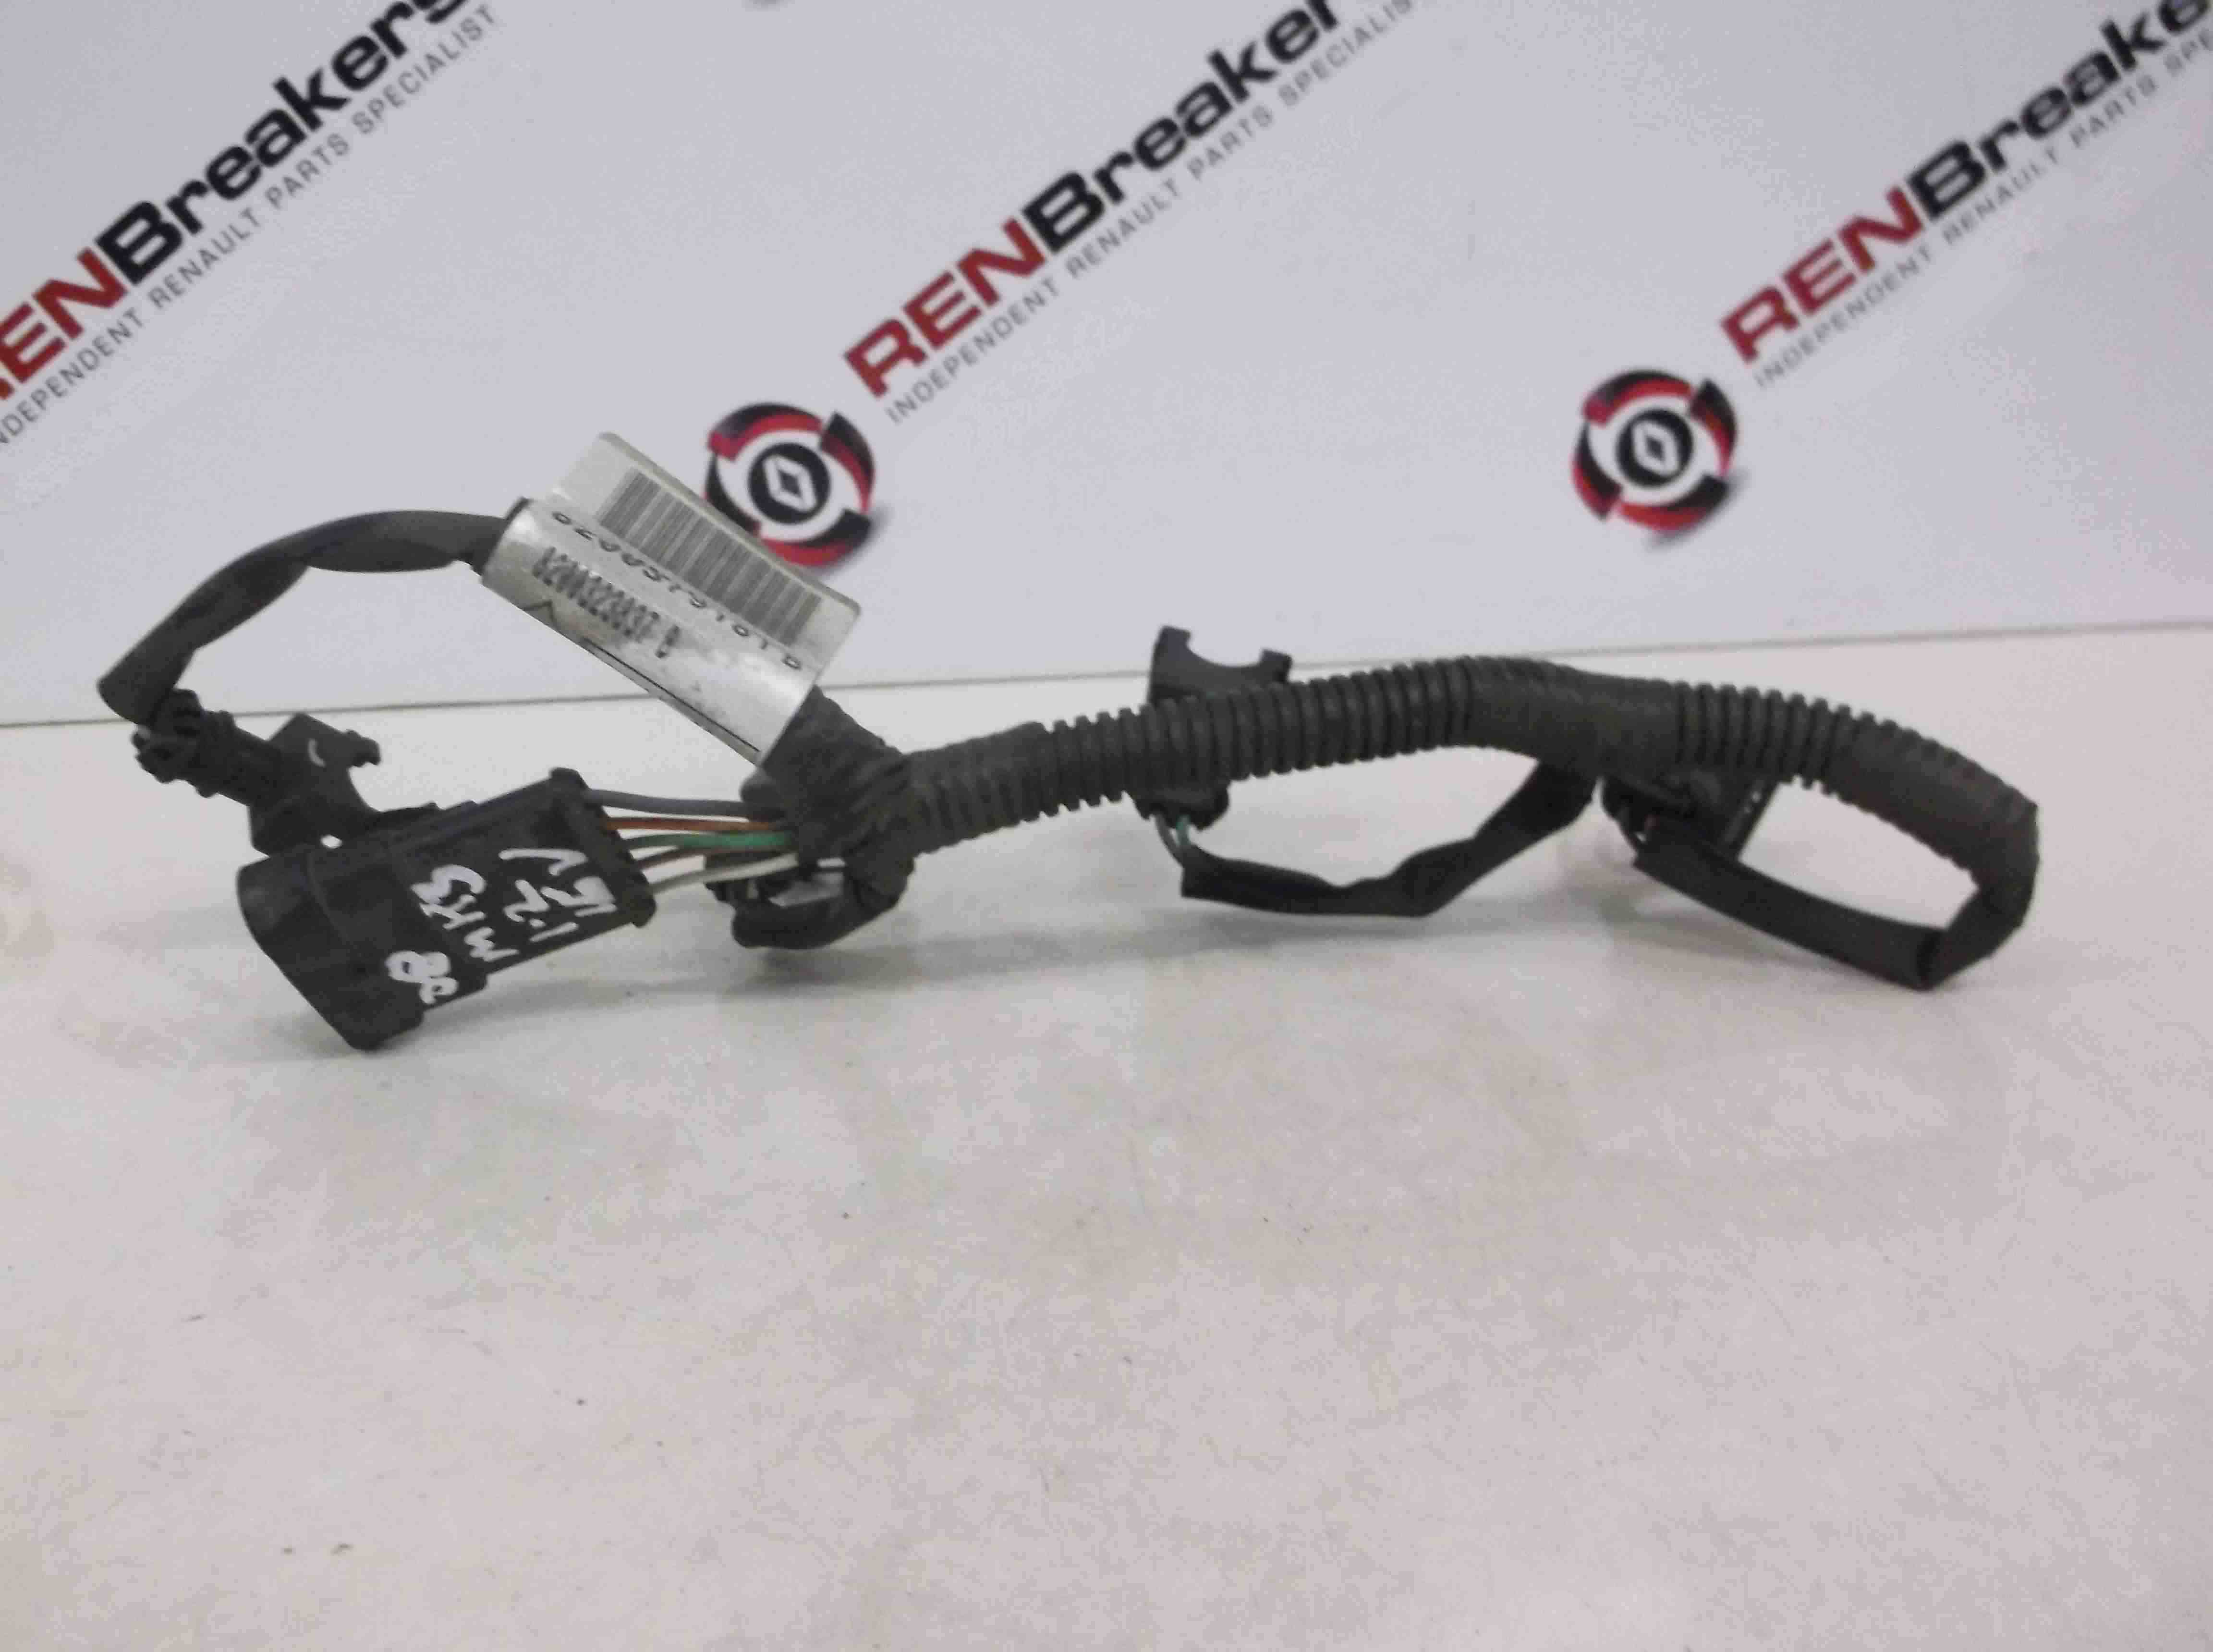 Renault Clio MK3 2005-2009 1.2 16v Fuel Injector Wiring Loom 8200379181